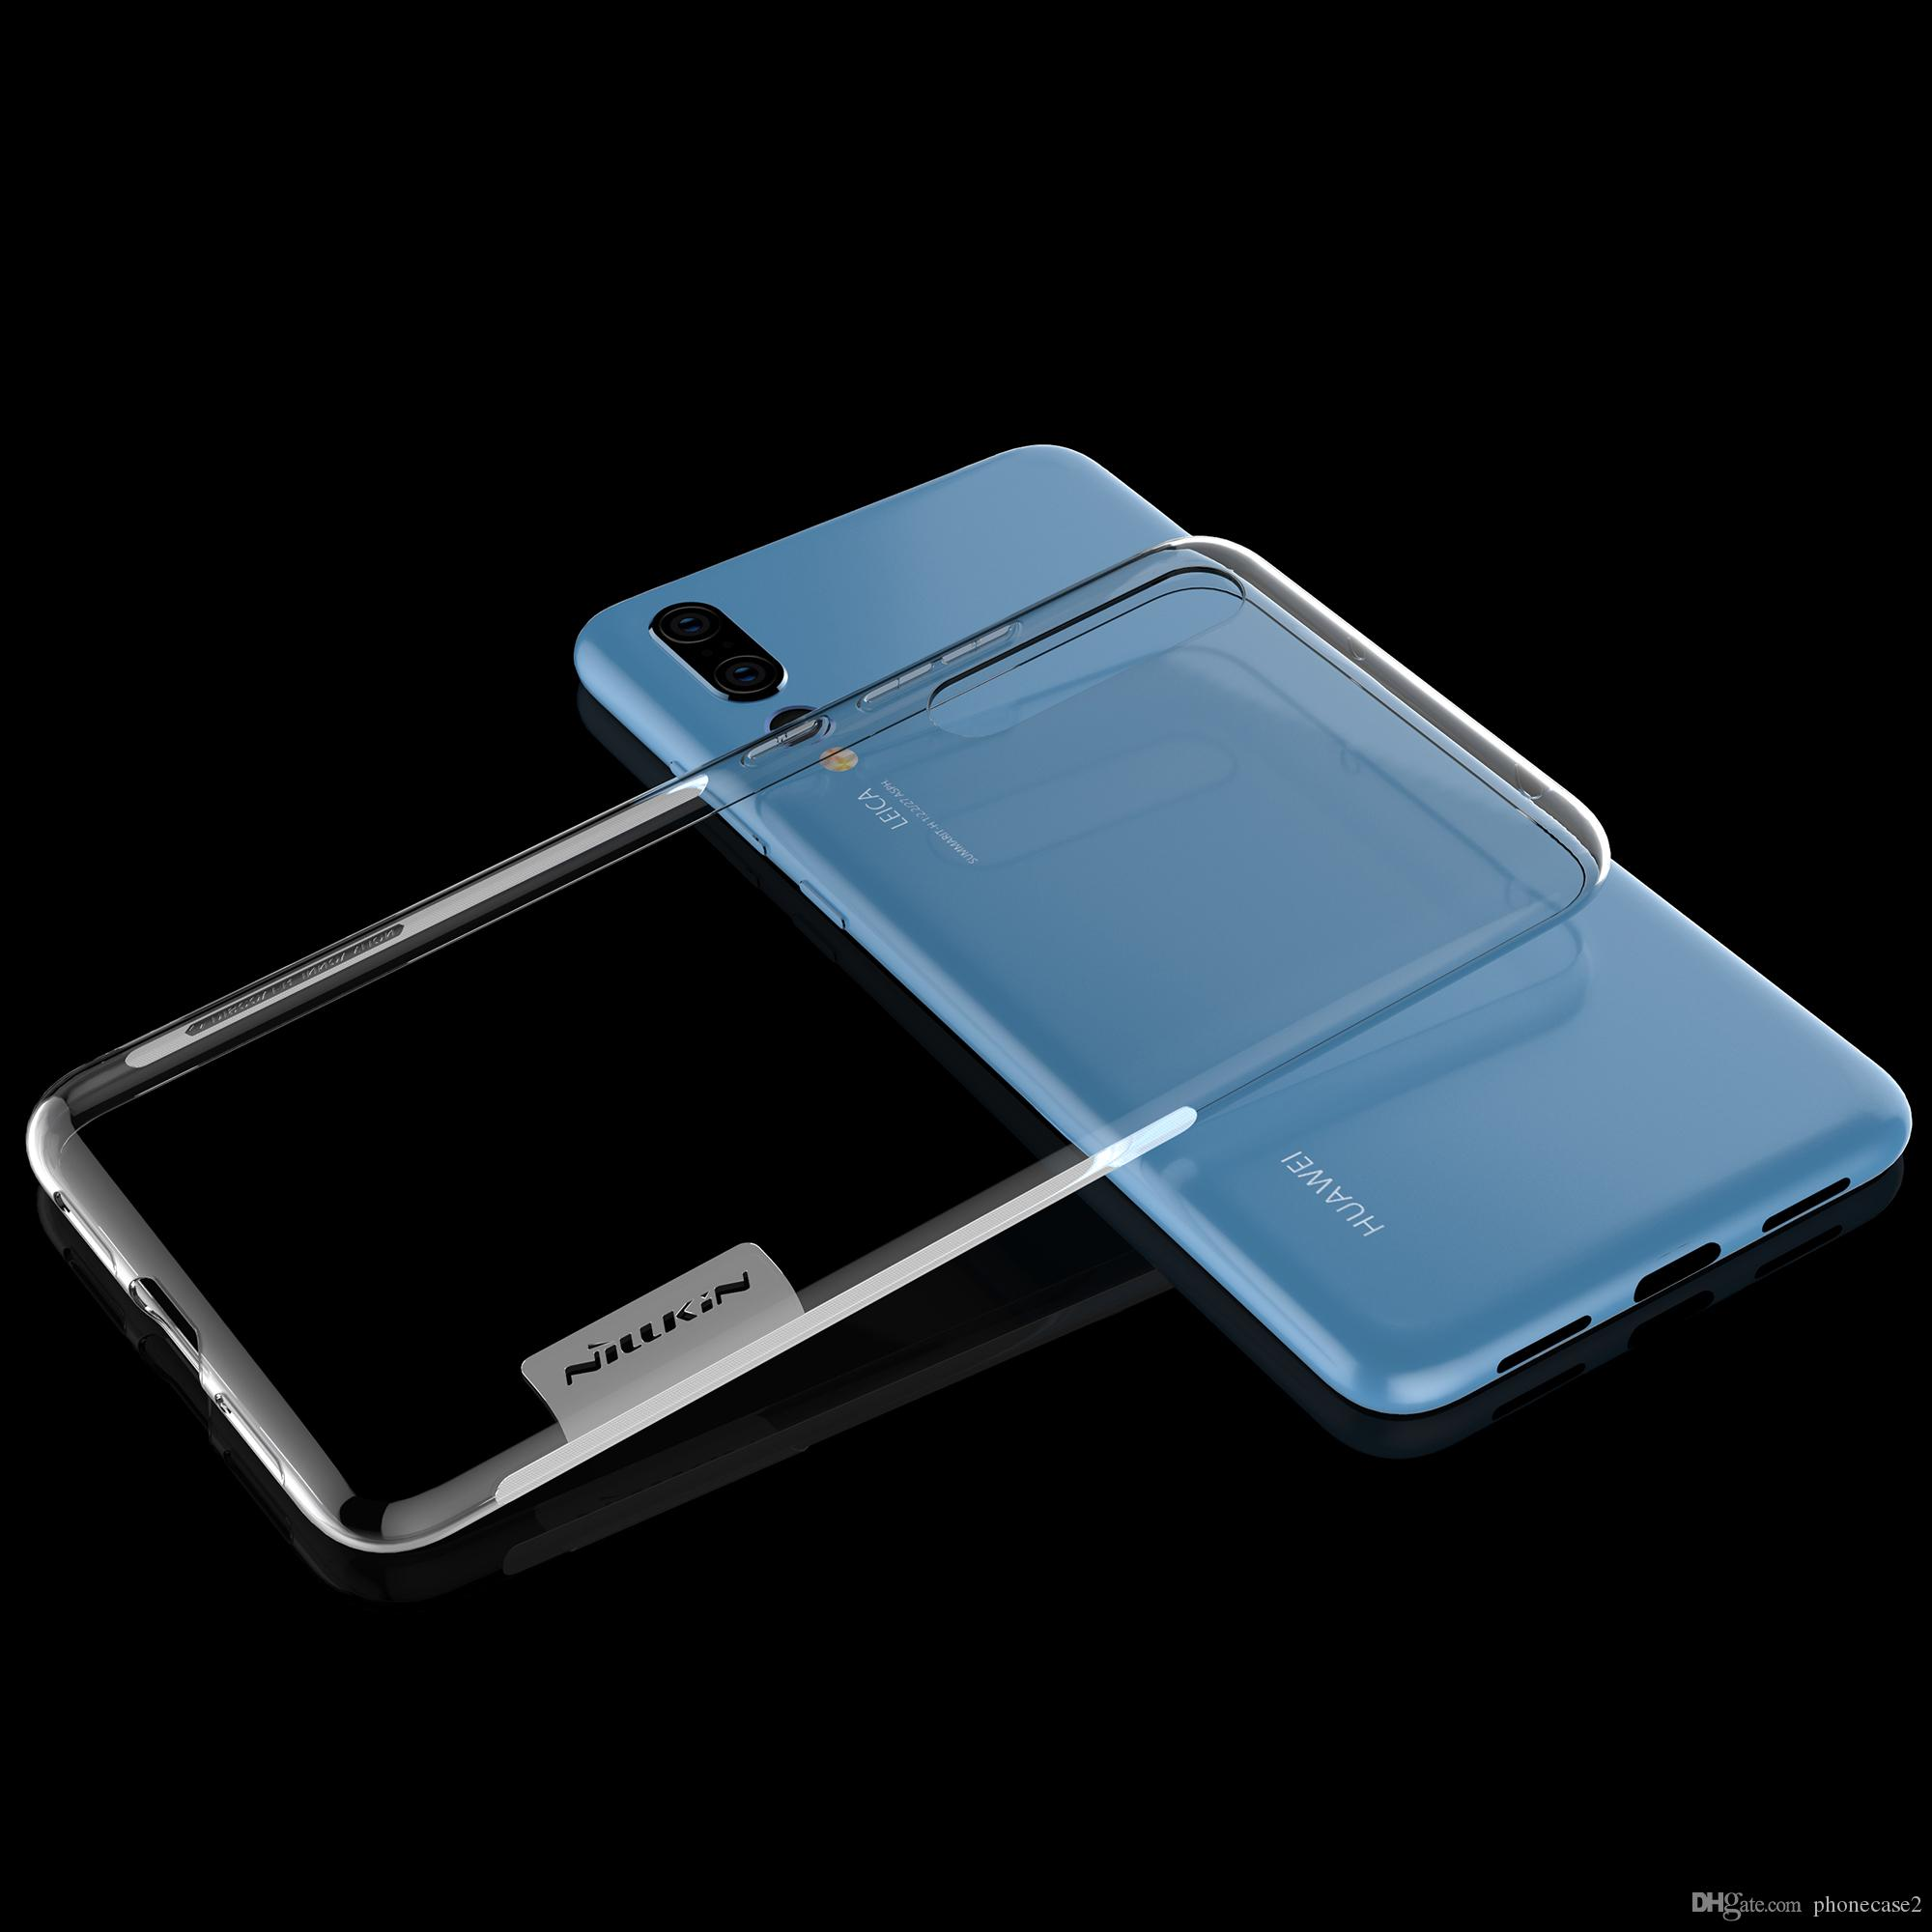 new arrivals 43a8c 59495 Huawei P20 Case Huawei P20 Pro Cover Case NILLKIN Clear Nature TPU case For  Huawei P20/P20 Plus Transparent Silicone Phone Cases